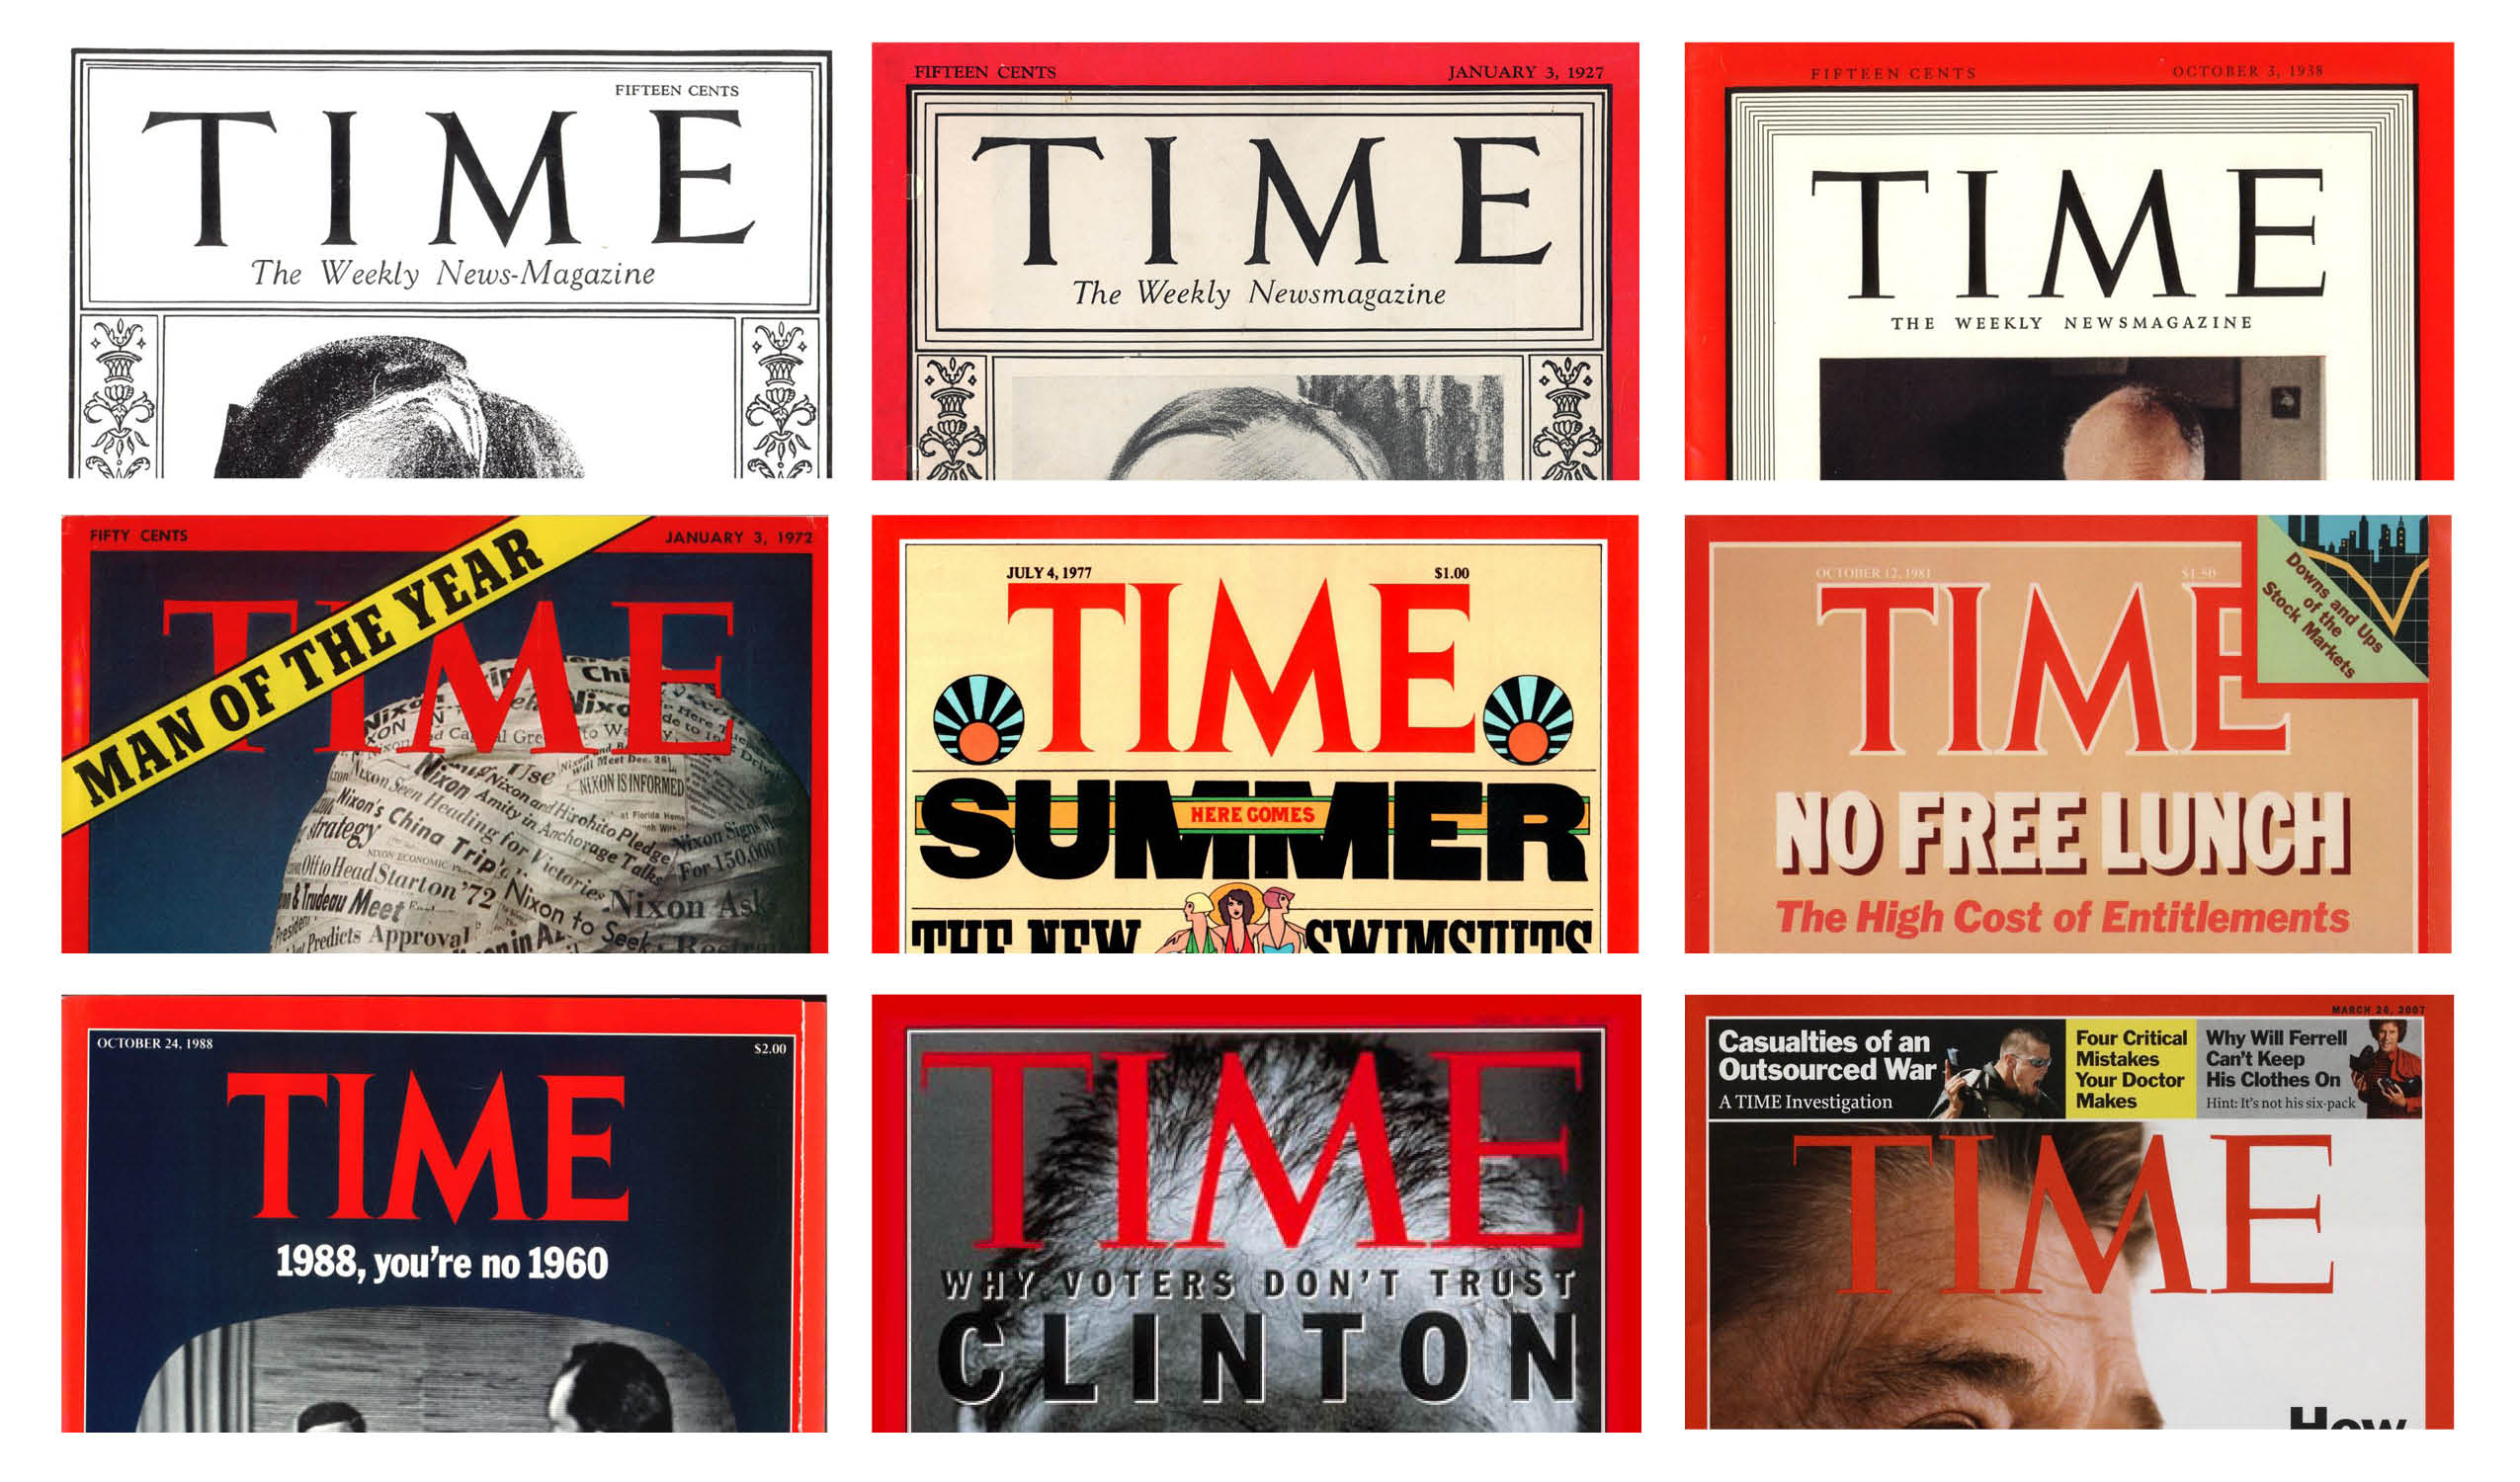 From top left: The first cover of TIME from March 3, 1923. The first red border on Jan. 3, 1927. New border design in Oct. 3, 1938. Logo changed in Jan. 3, 1972, then again in July 4, 1977. A white outline was added in Oct. 12, 1981. It was then removed starting with the Oct. 24, 1988 issue. The current logo, at a size that spanned the width of the cover, was first implemented in April 20, 1992. The first issue of the redesign was Mar. 26, 2007.